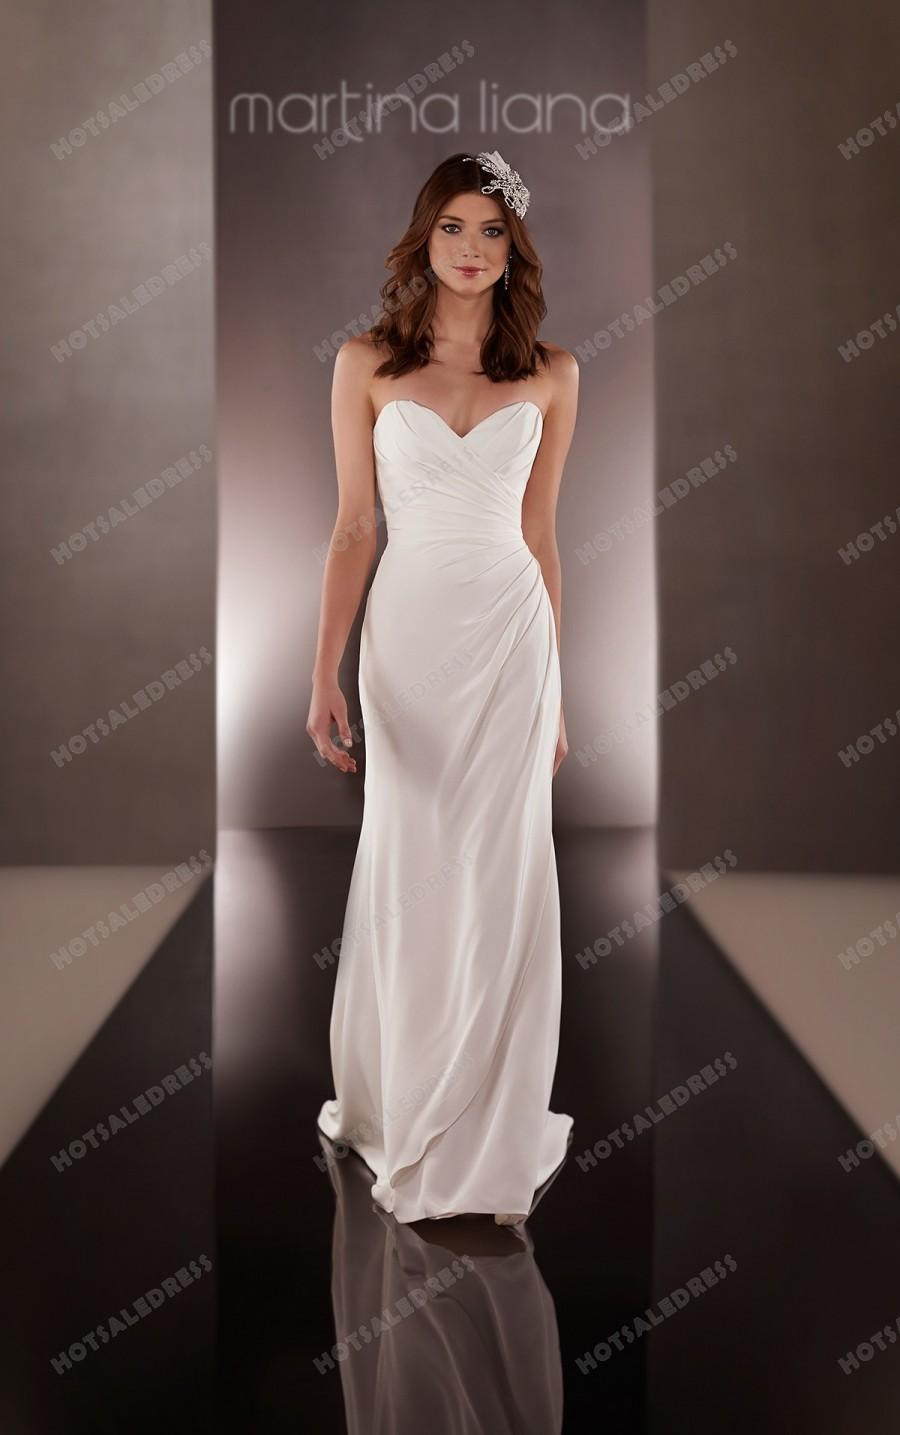 Wedding - Martina Liana Asymmetrical Wedding Dress Style 653